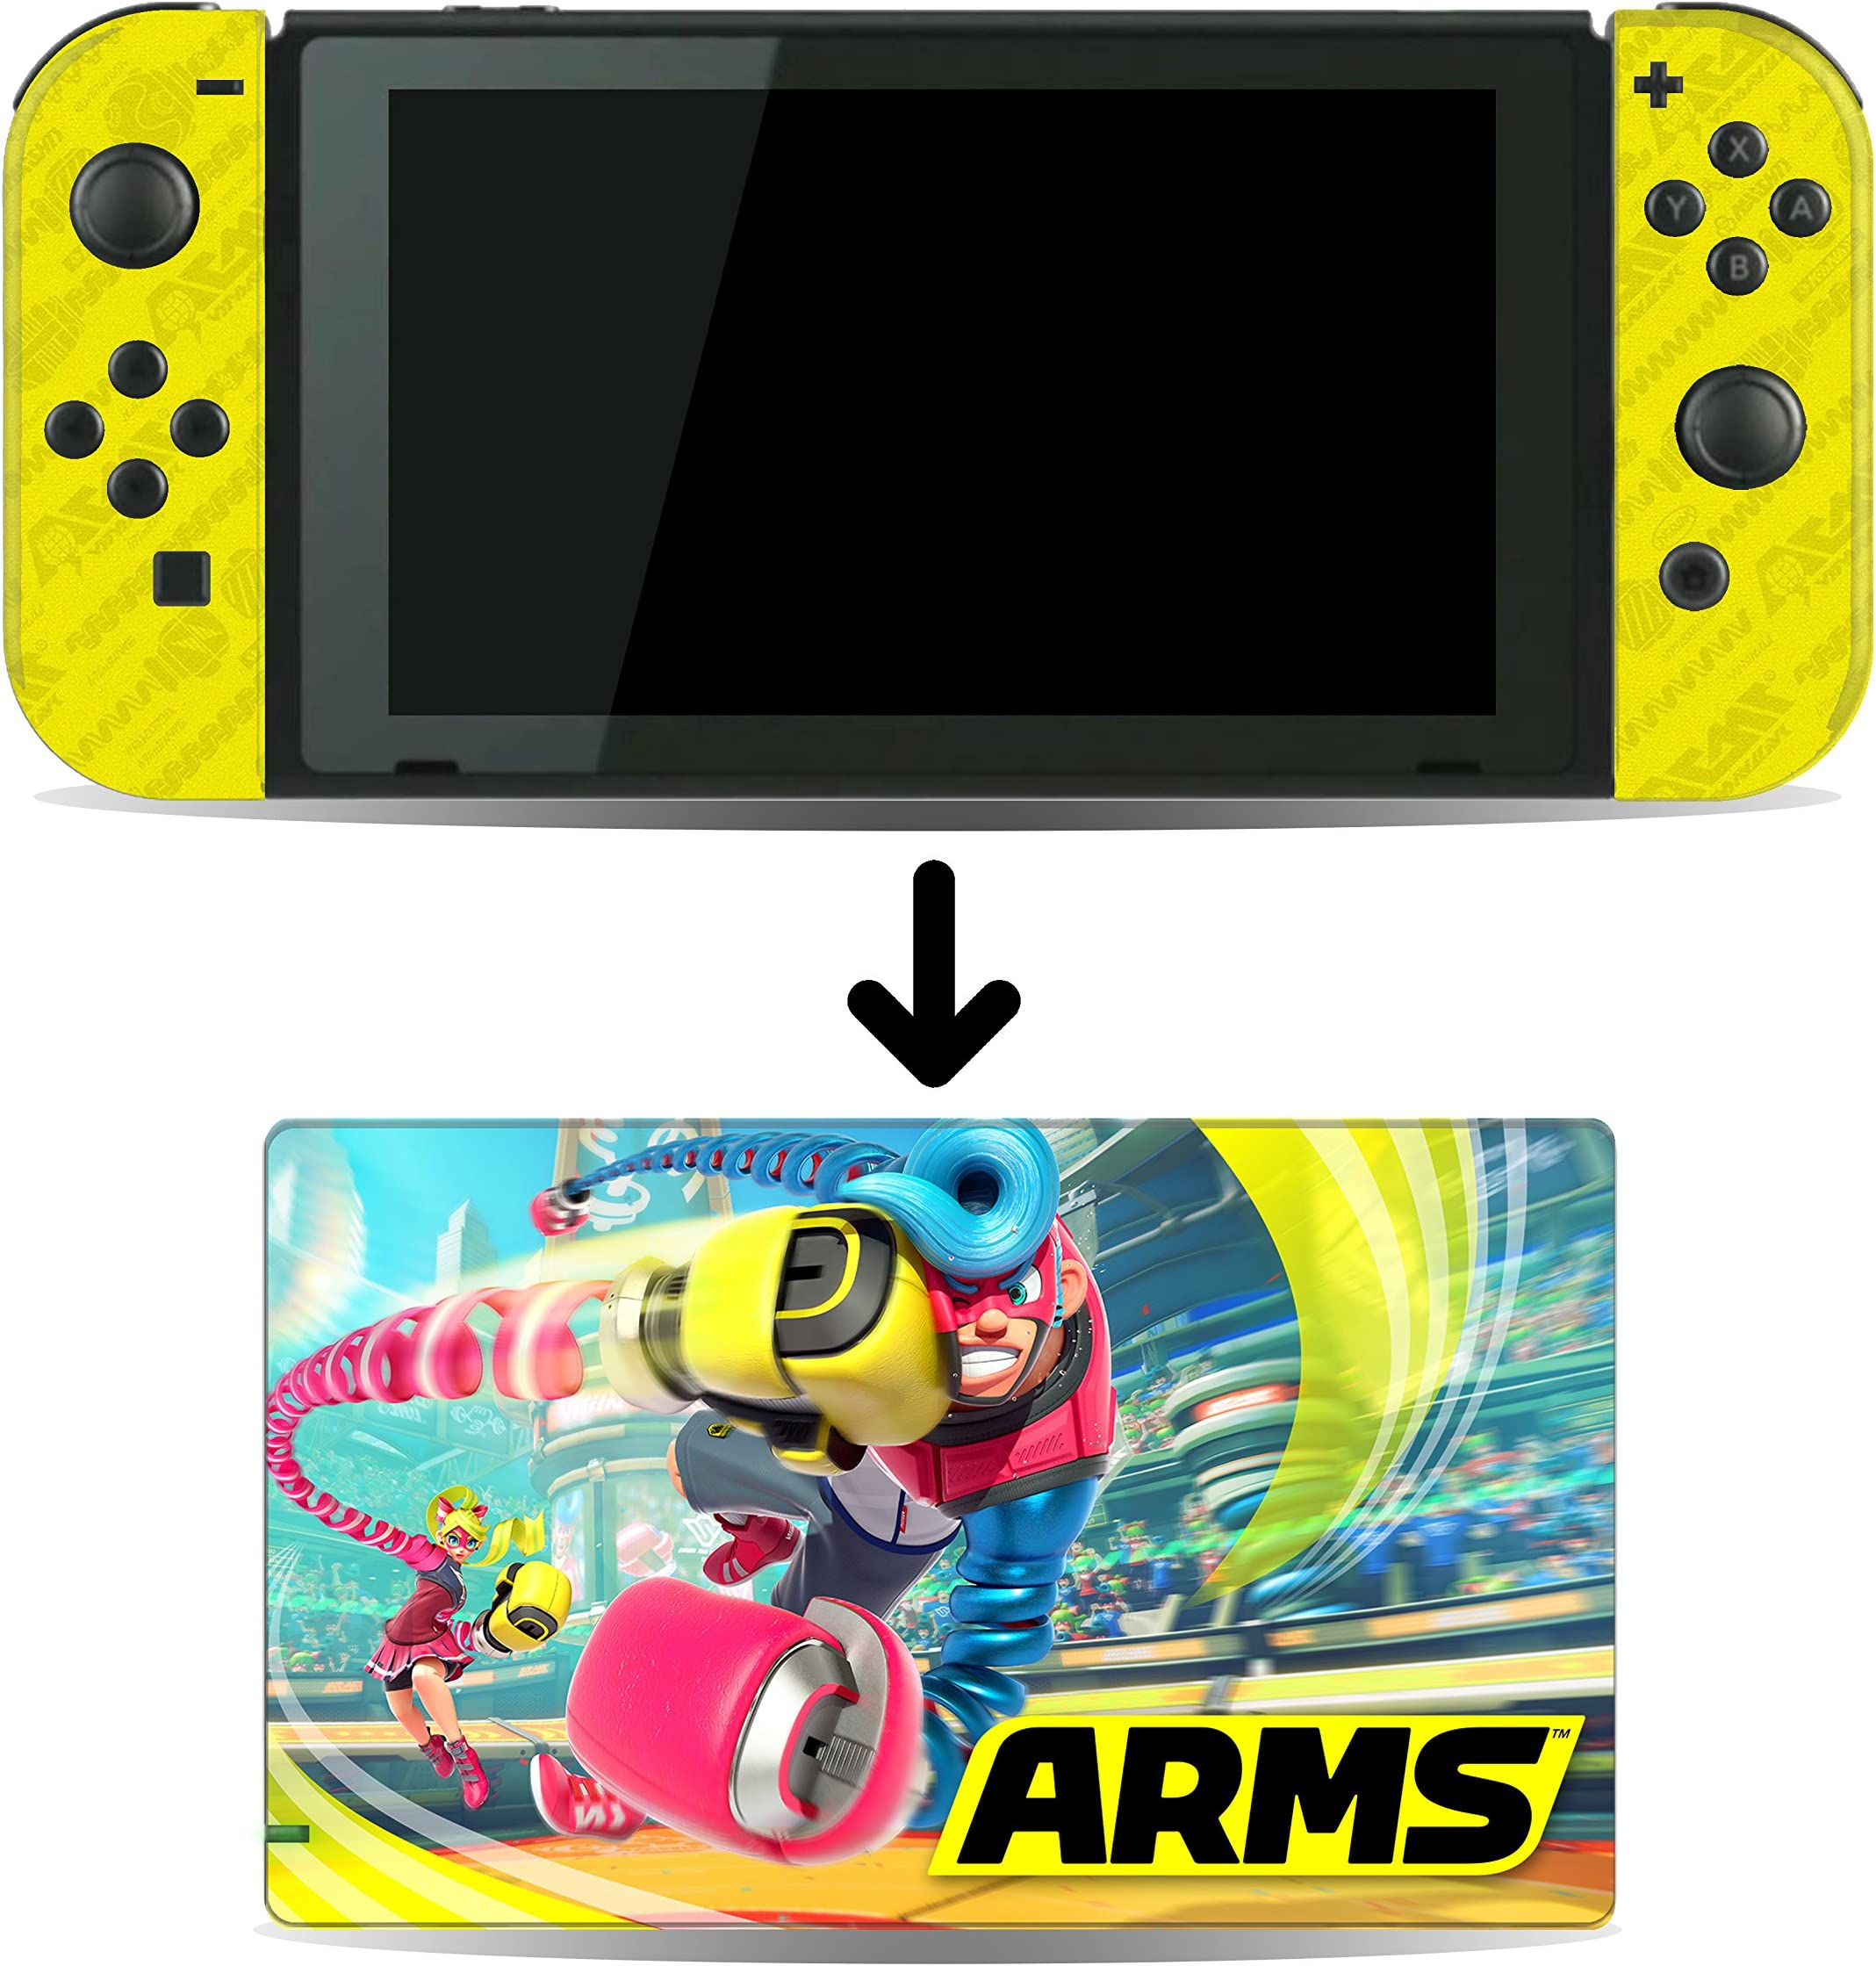 Arms Game Skin For Nintendo Switch Console And Dock Image Unavailable